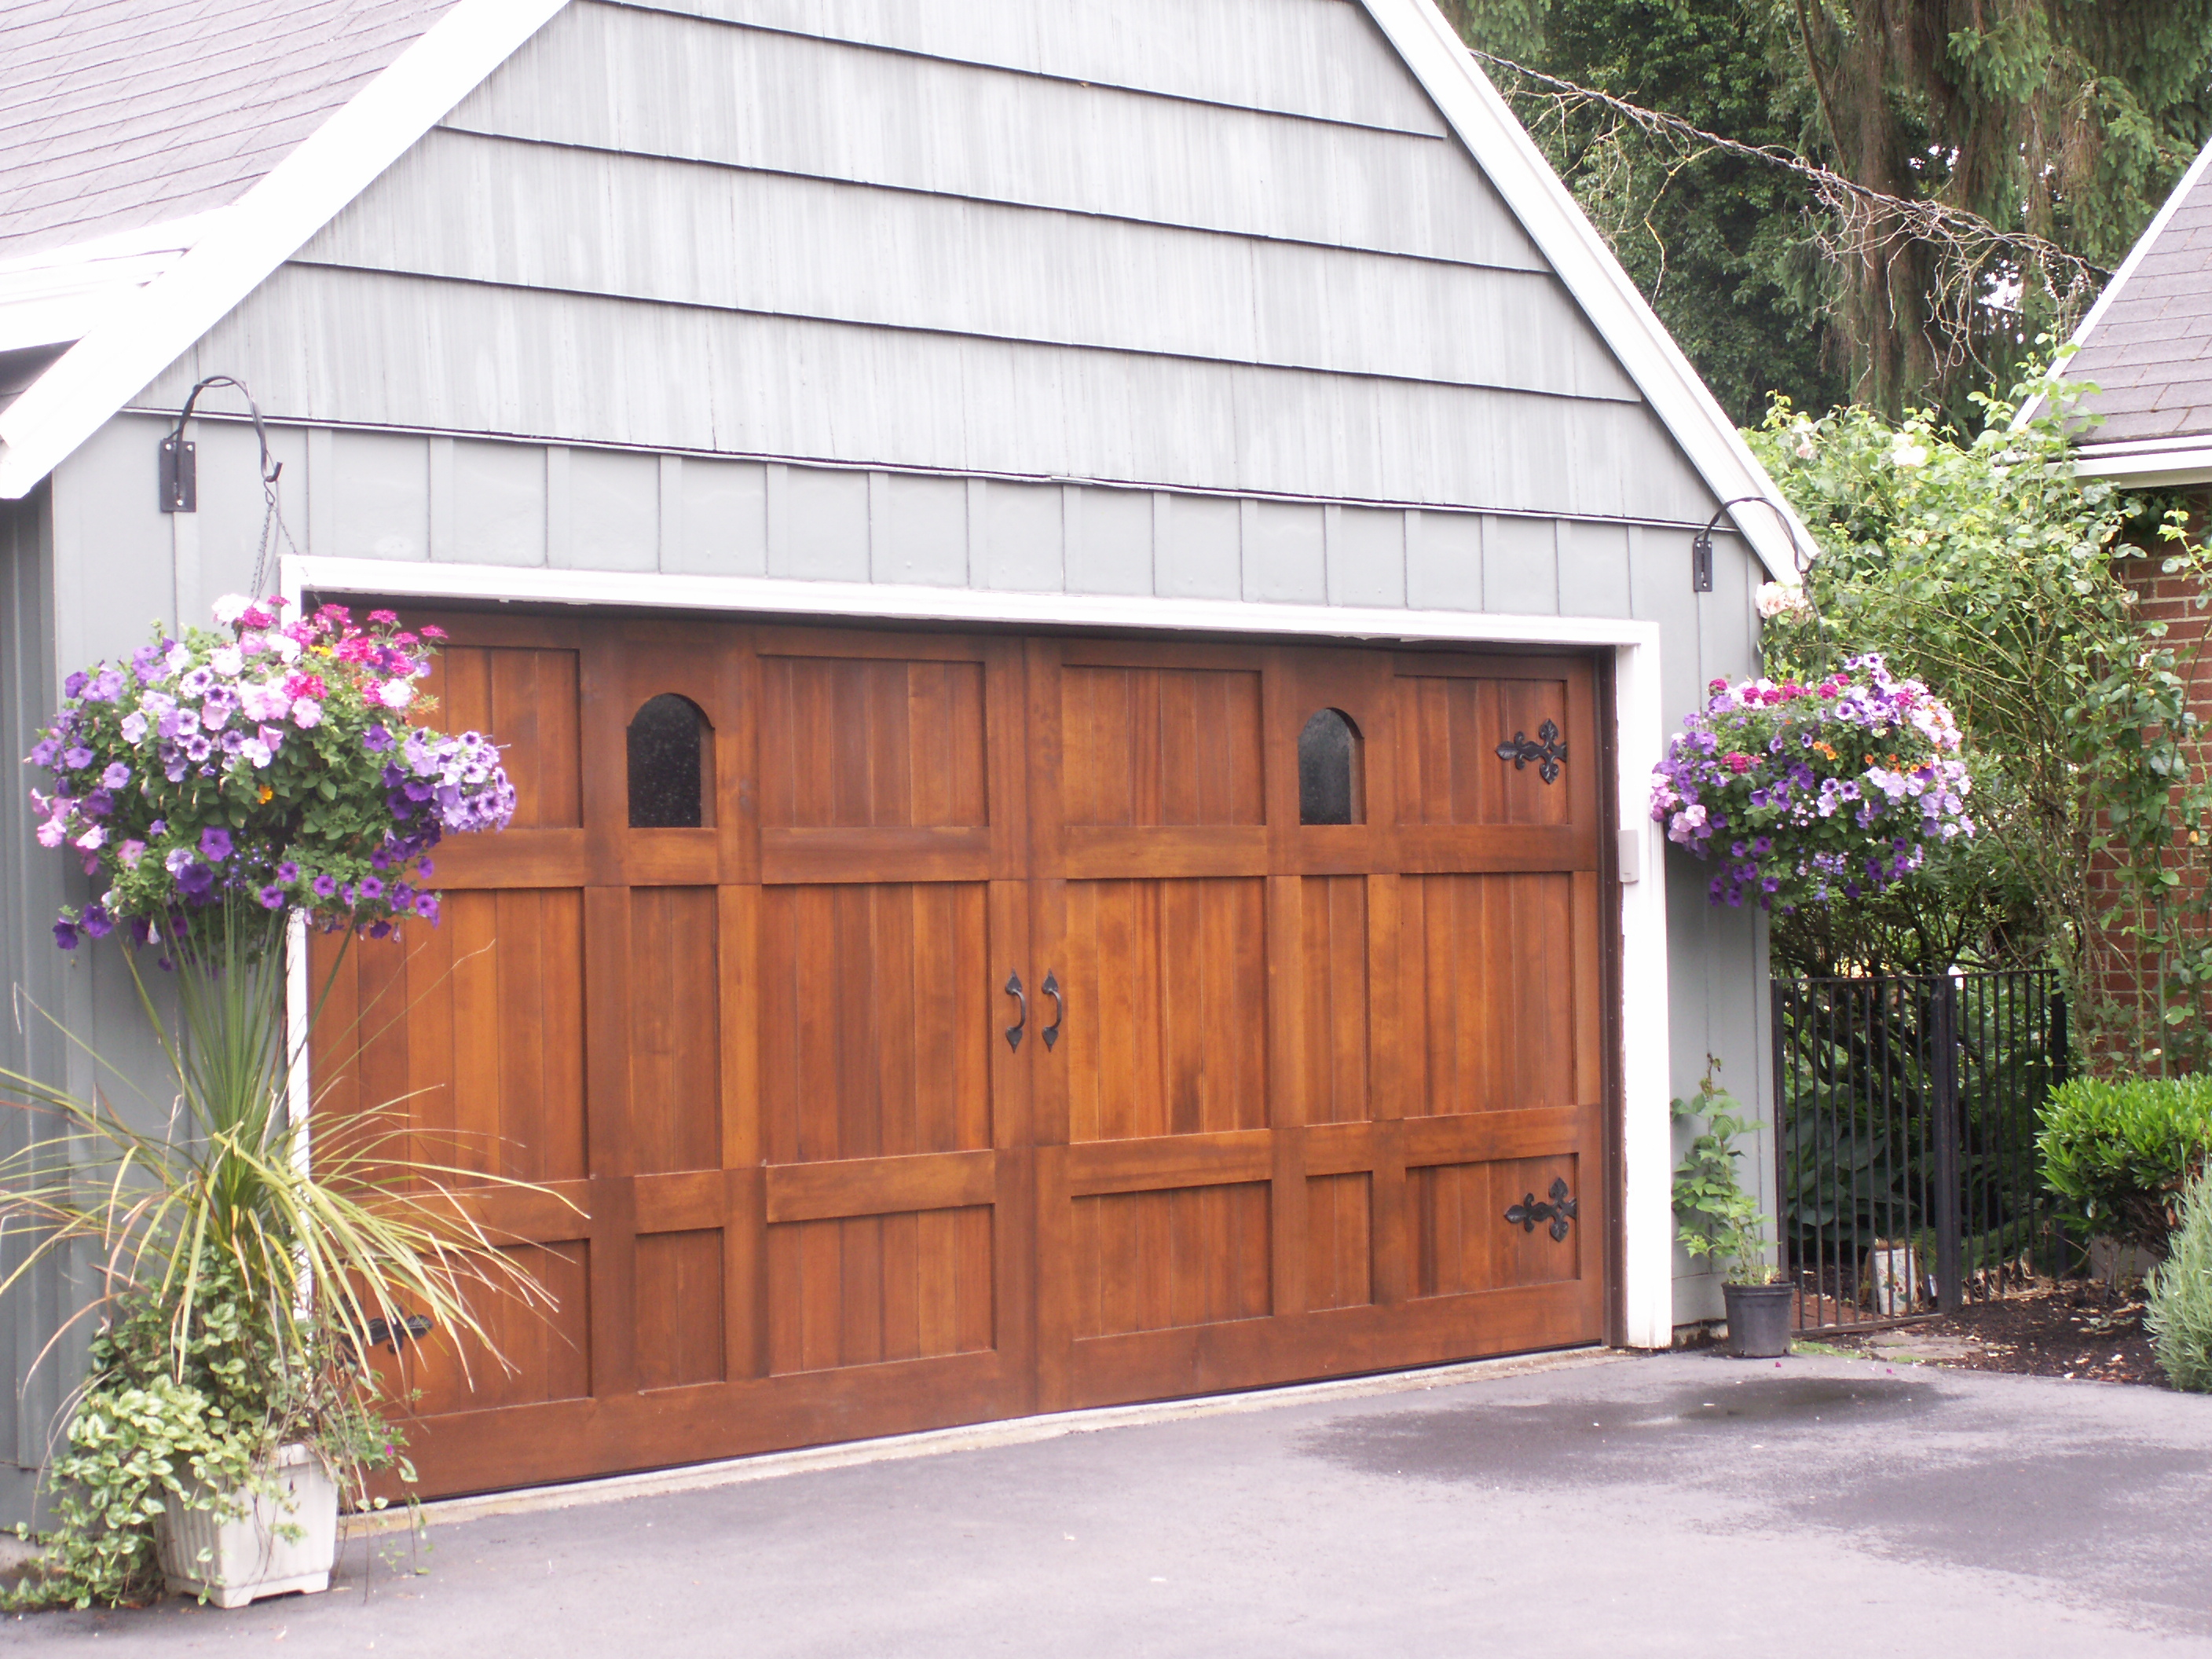 garage door looking localsaver your need oh experience in a for current homeservices whether team assistance coupons are home services of grove maintaining new garagedoorservices and city expertise you the has our or coupon